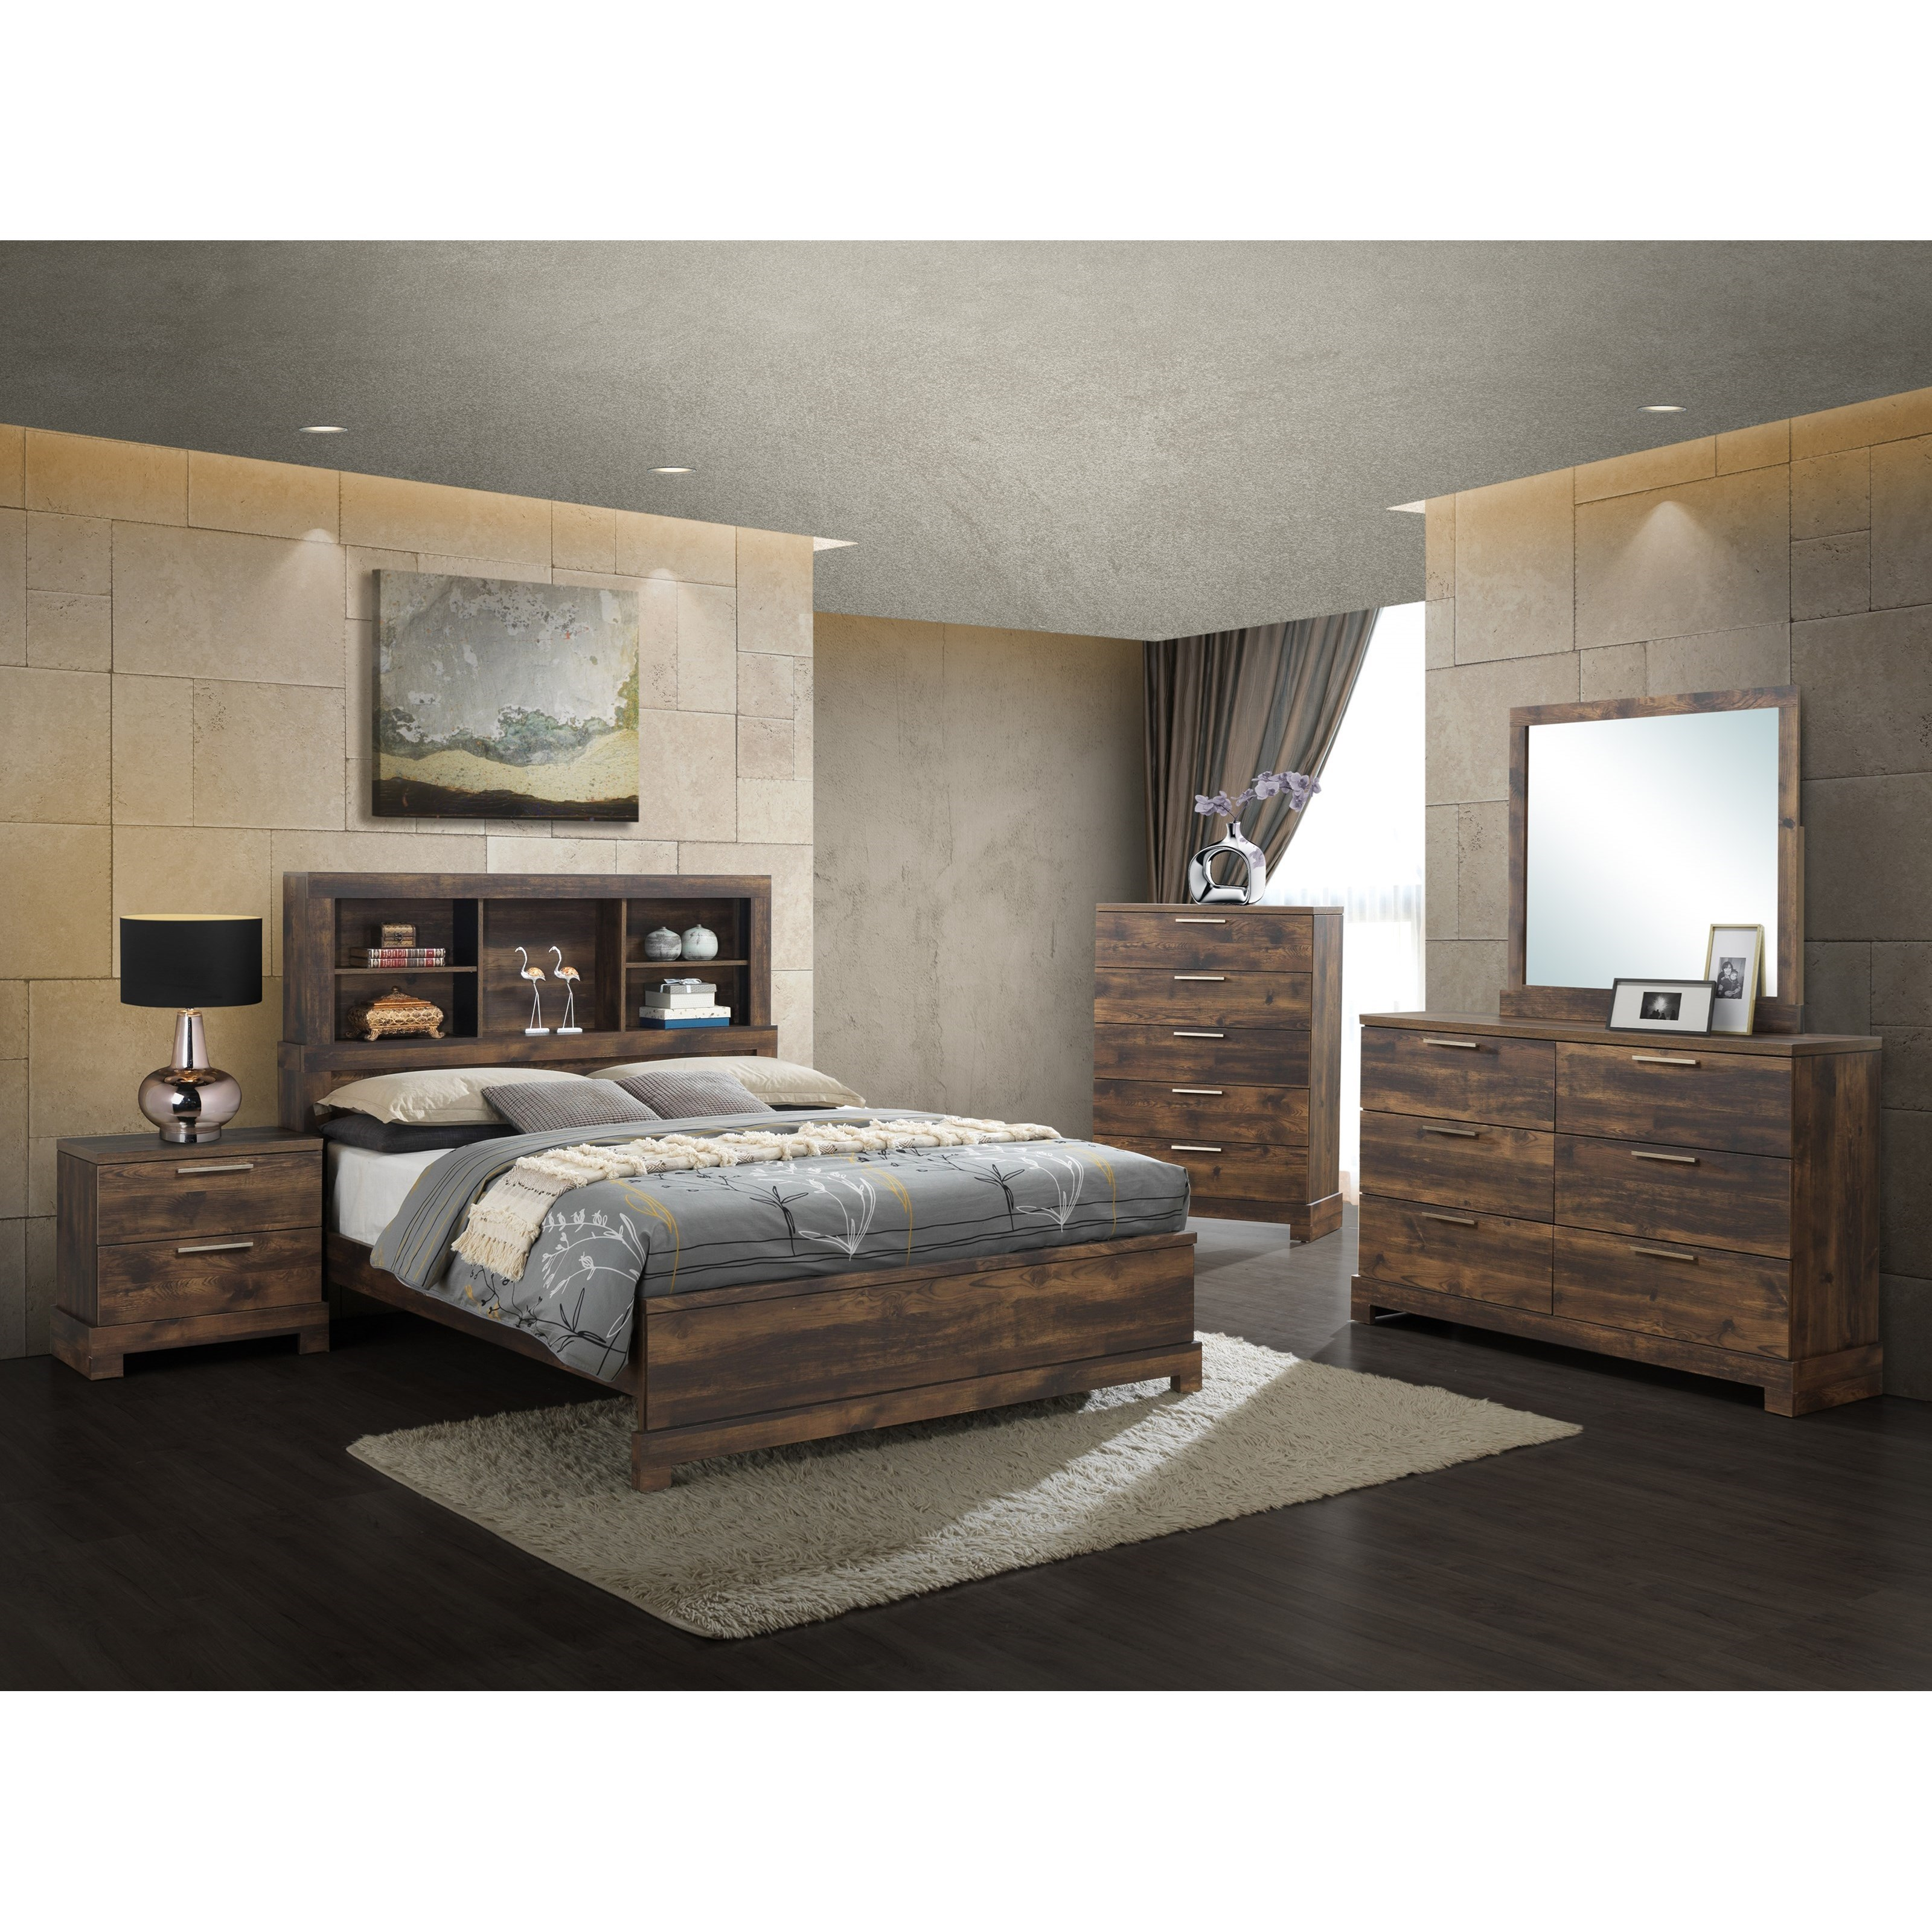 Campbell King Bedroom Group by New Classic at Rife's Home Furniture